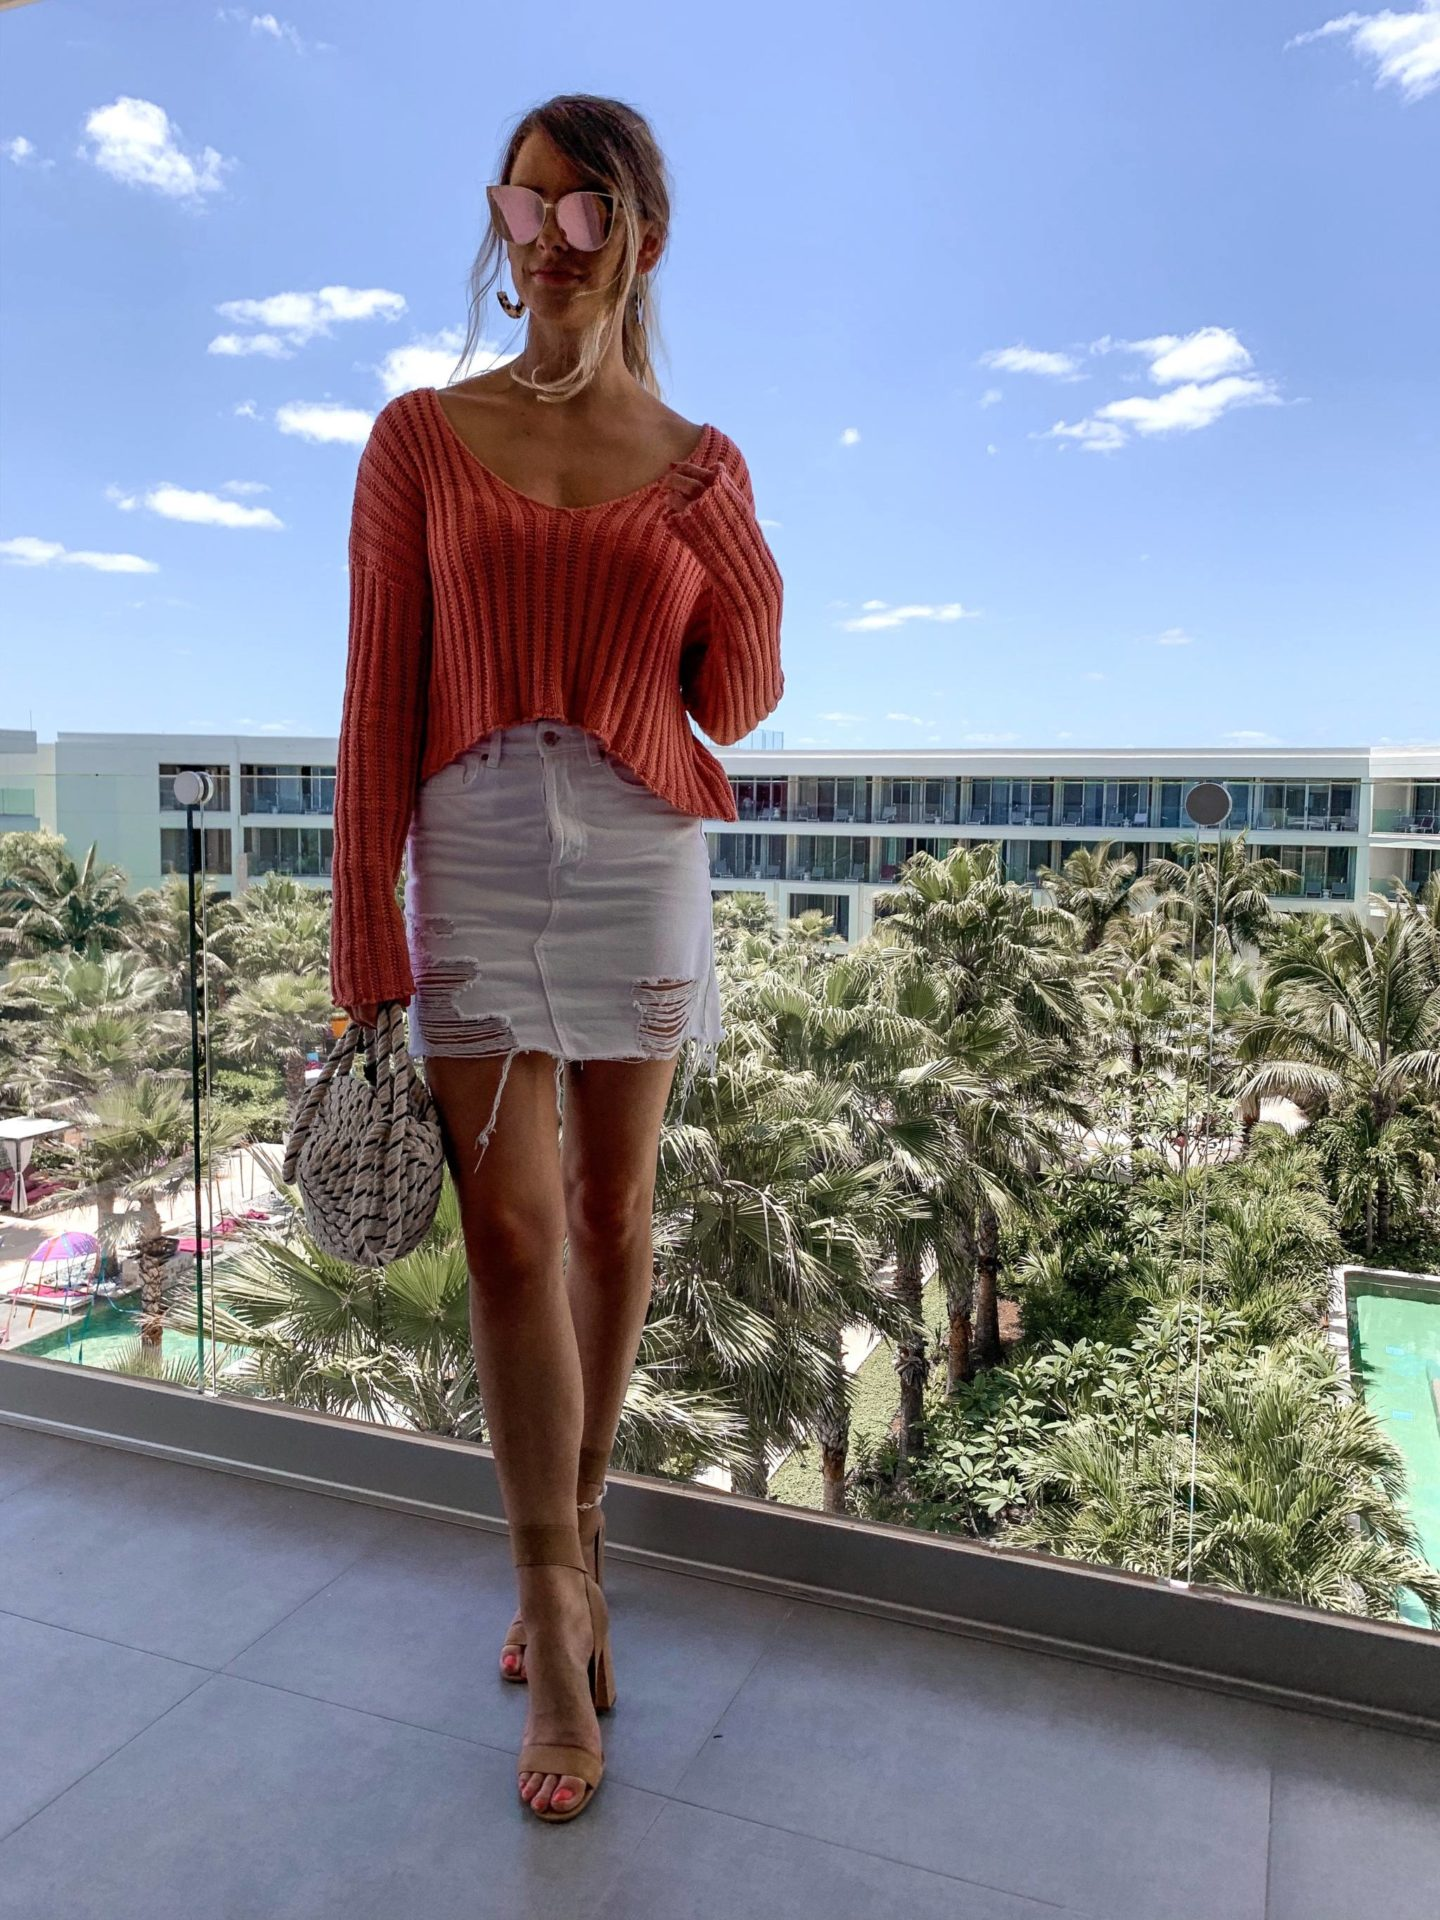 Canadian fashion blogger at all inclusive resort in cute outfit